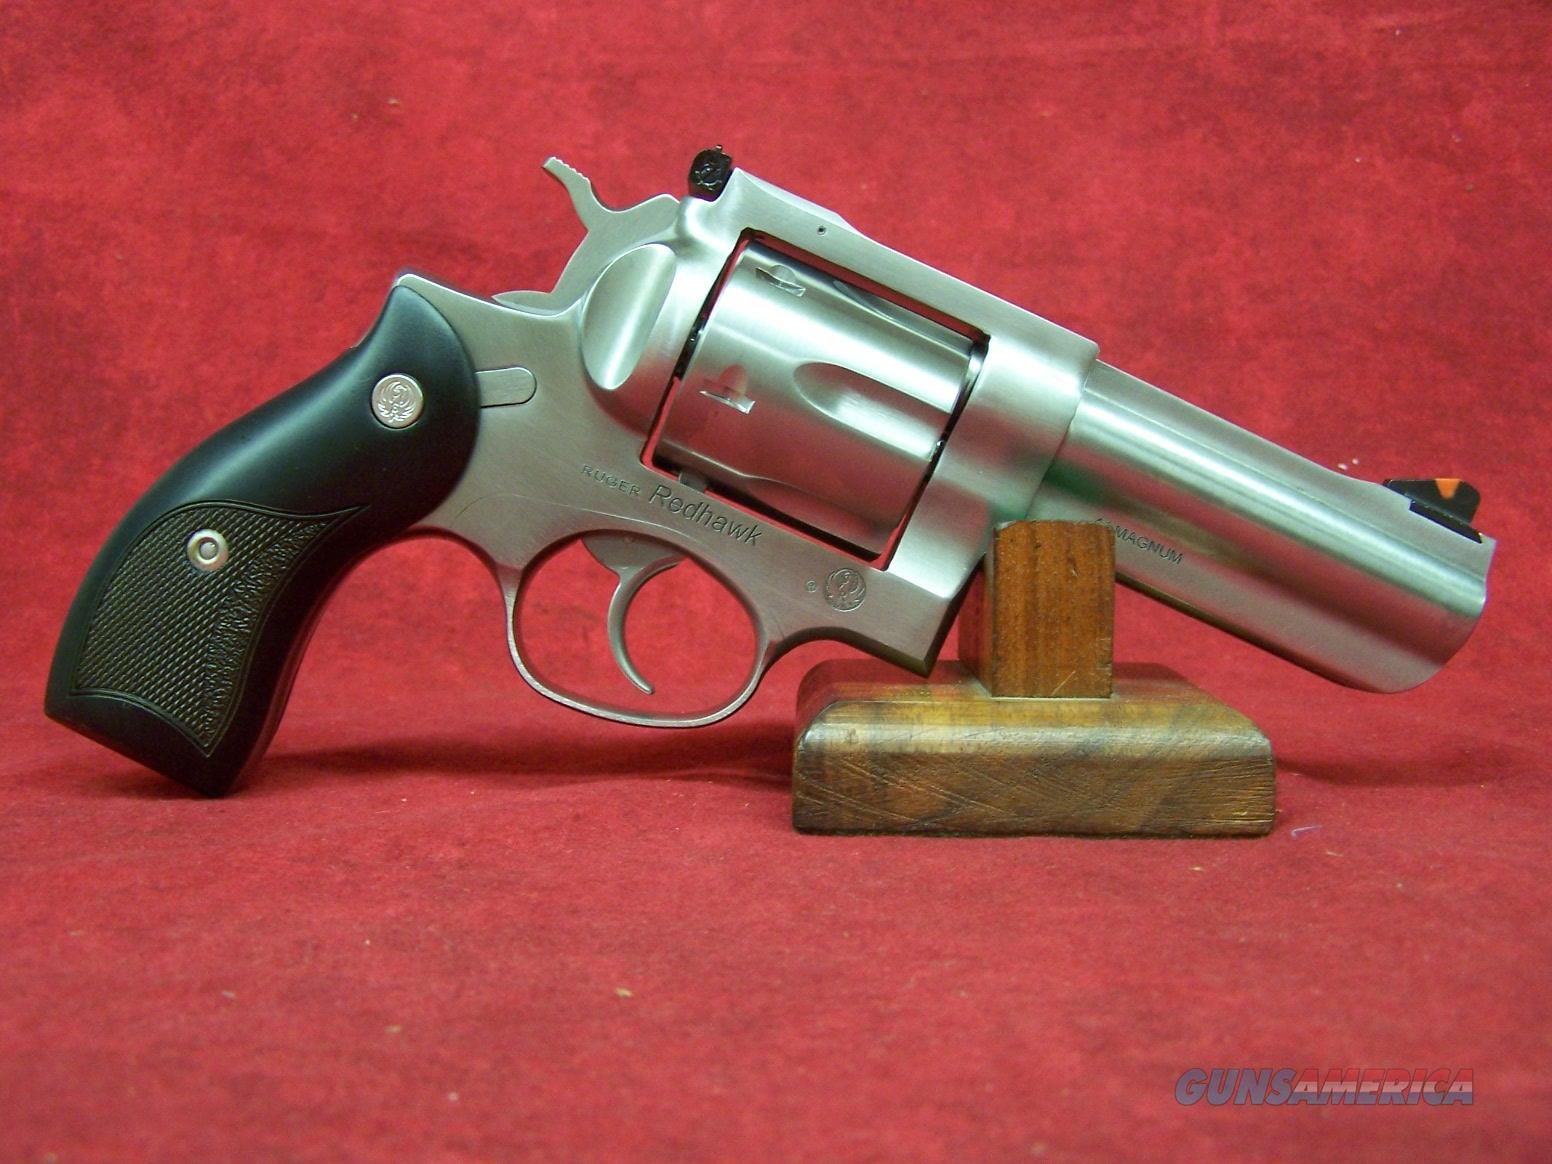 """RUGER REDHAWK 44MAG 4"""" SS FULL LUG AS ROUND BUTT/BLACK MICARTA 44 Magnum 